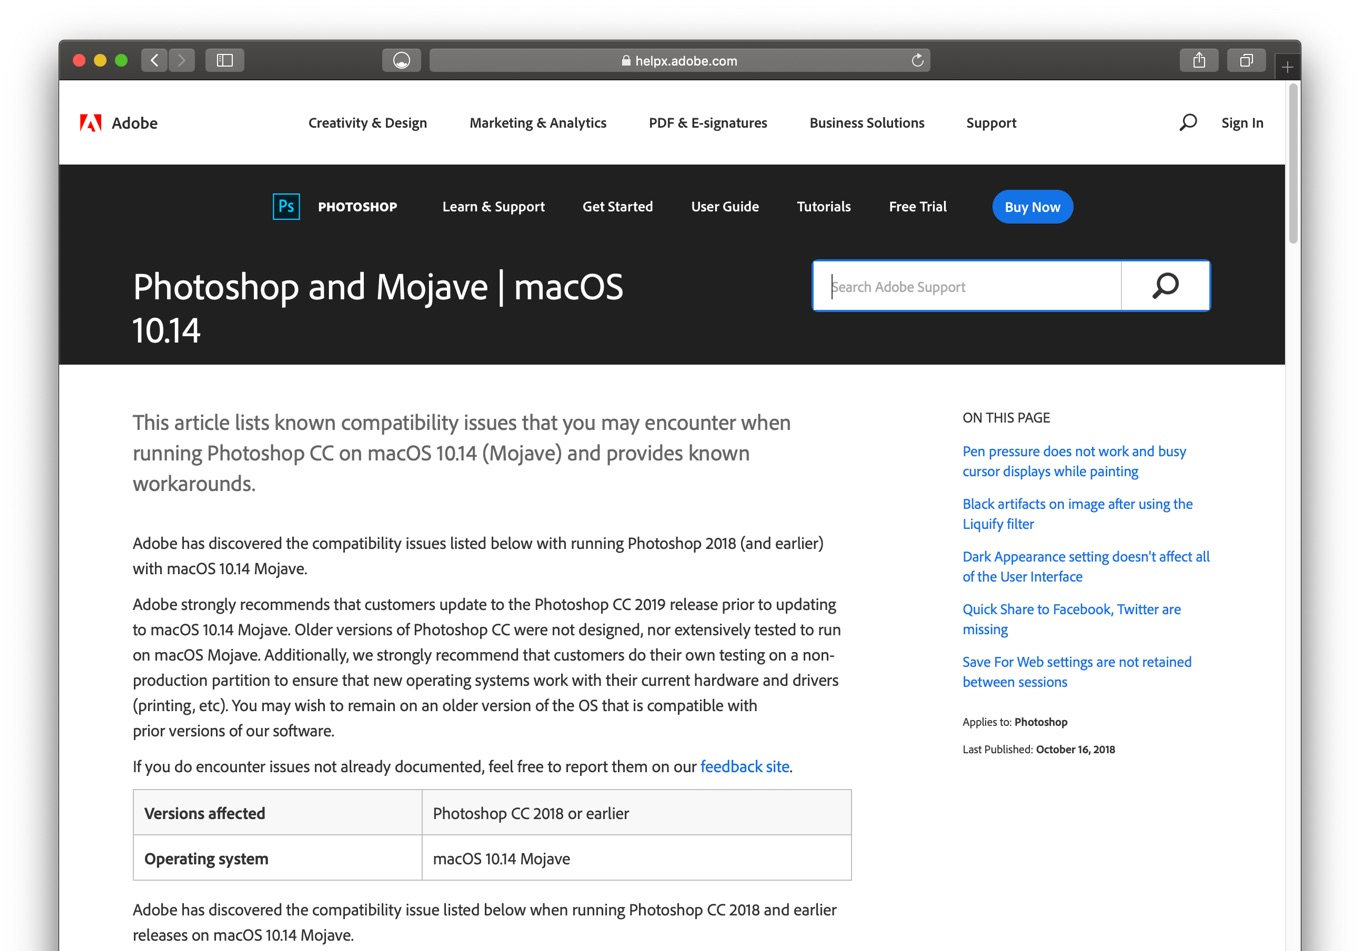 Adobe strongly recommends that customers update to the Photoshop CC 2019 release prior to updating to macOS 10.14 Mojave.